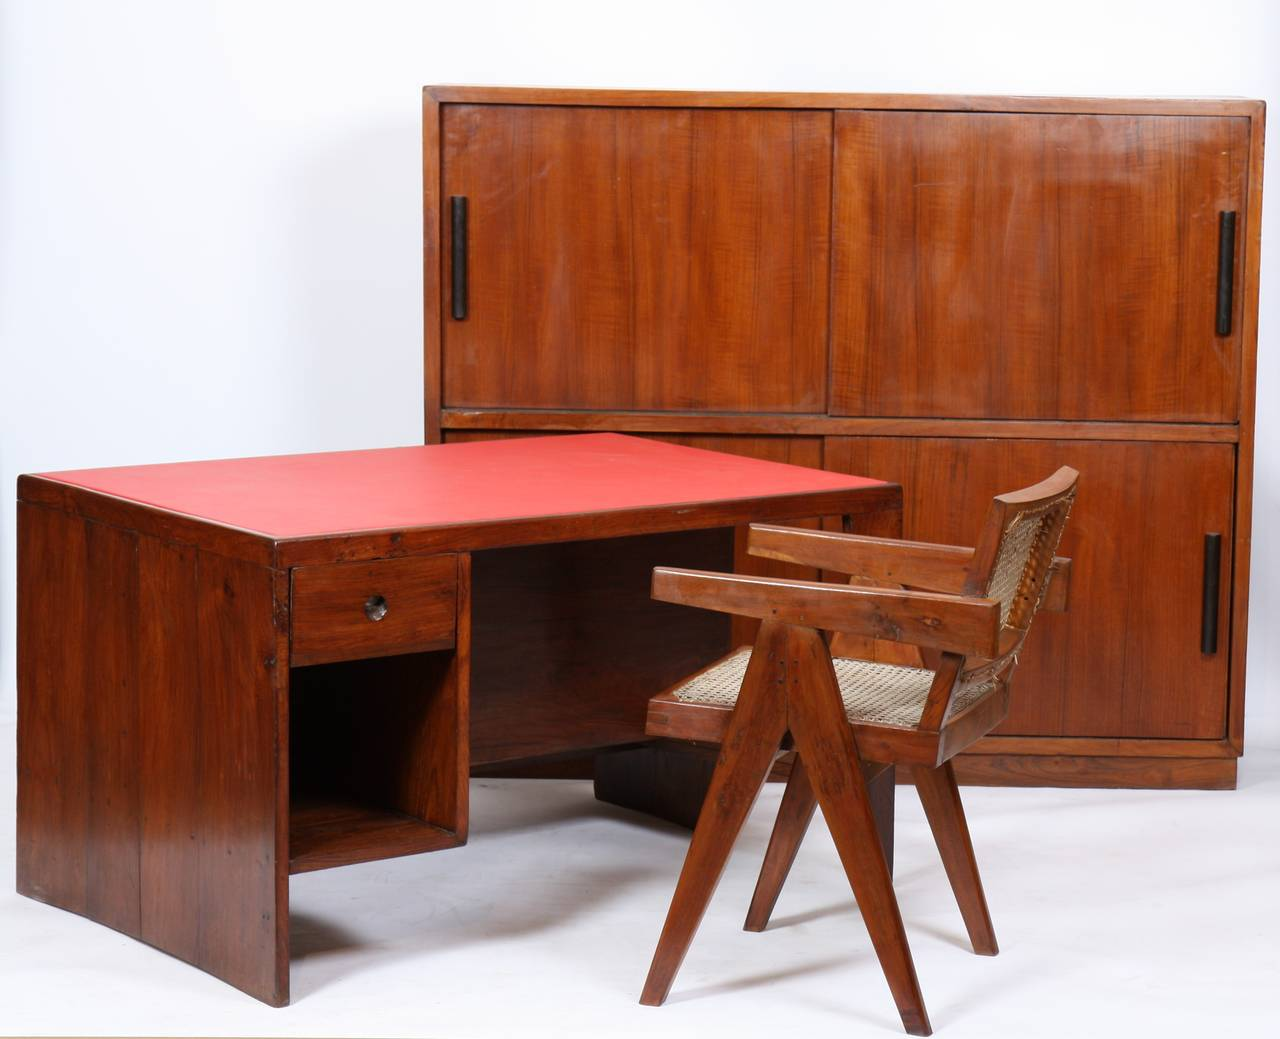 Indian Rare Furniture Storage from Pierre Jeanneret For Sale